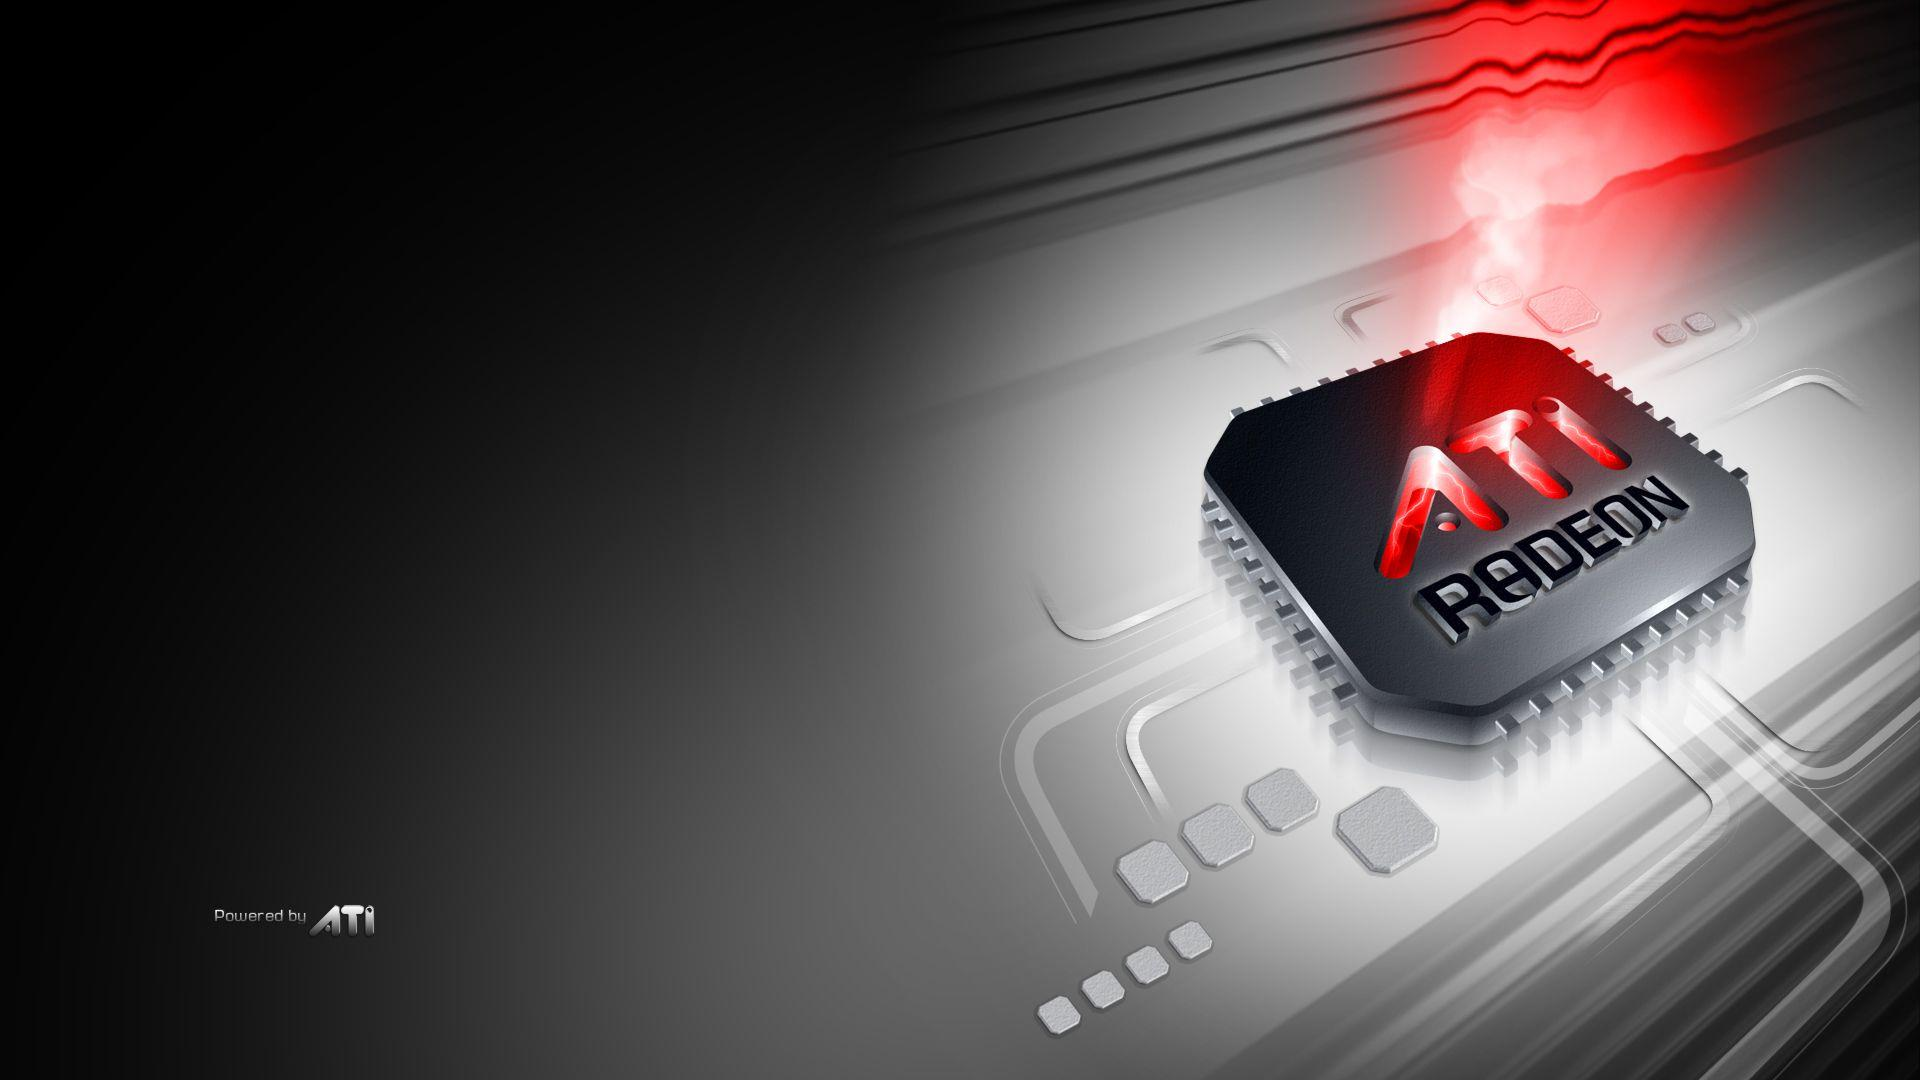 Amd Radeon Wallpapers 1920x1080 Wallpaper Cave